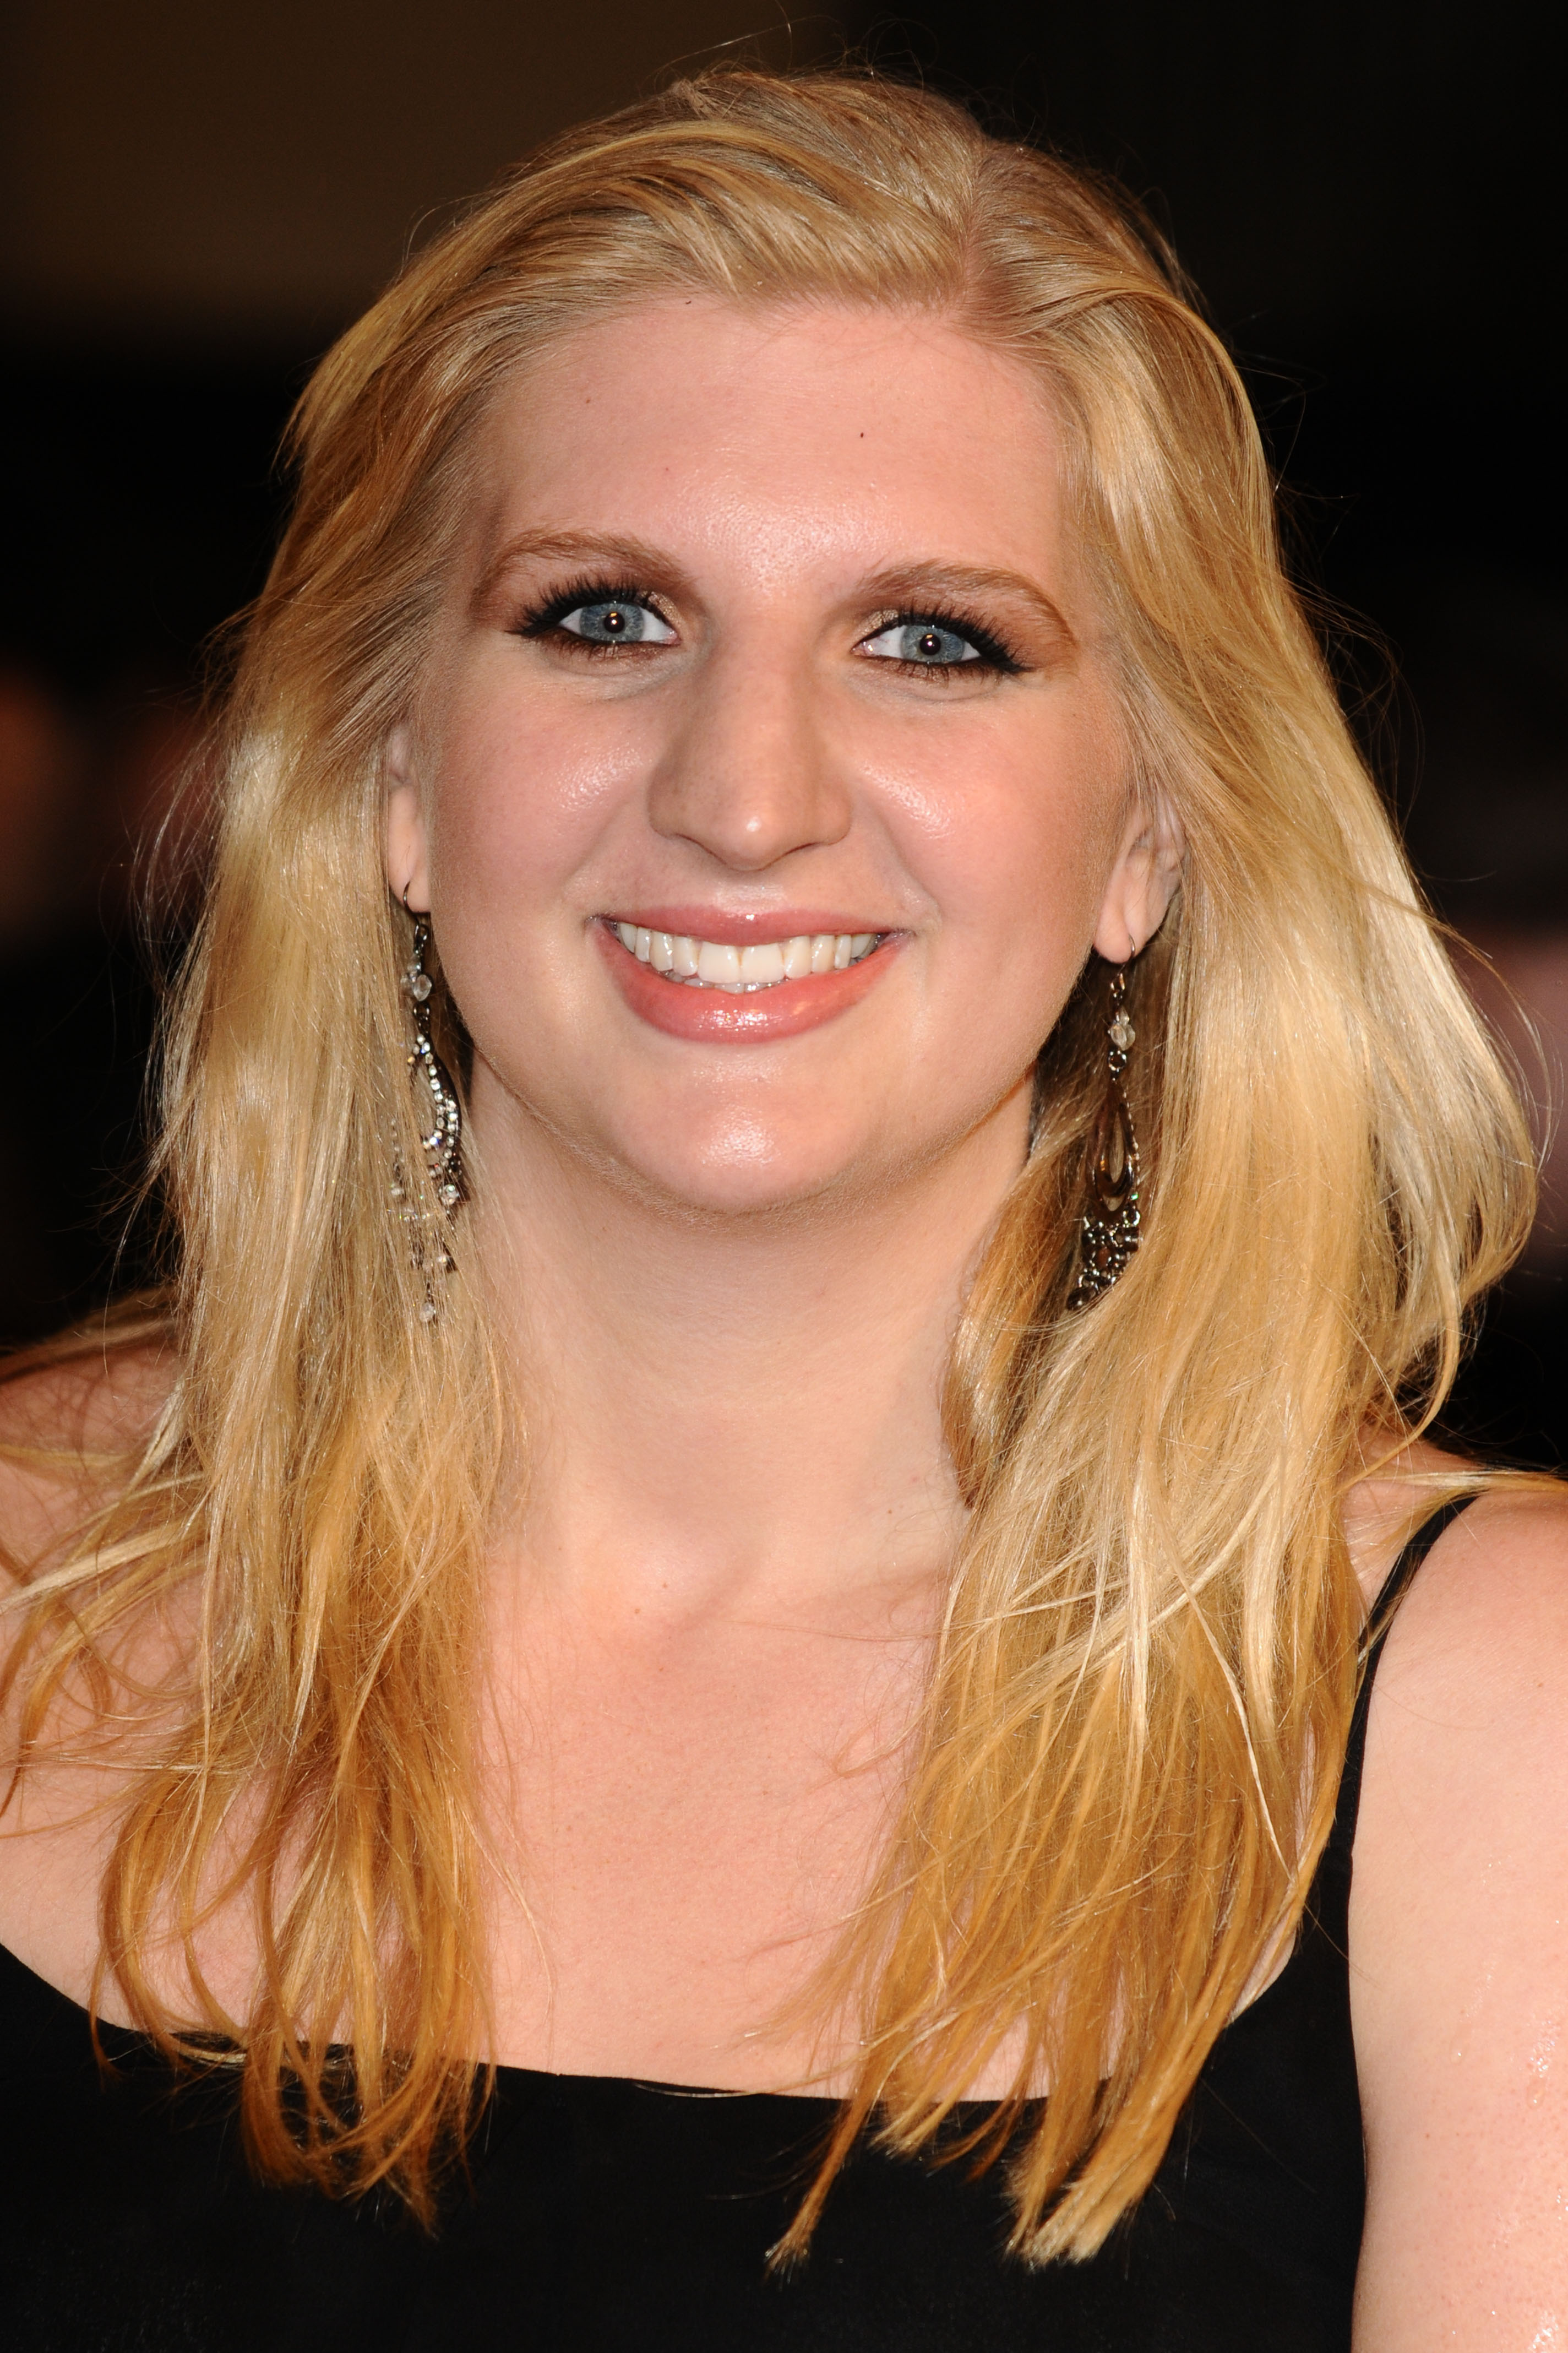 rebecca adlington - photo #8